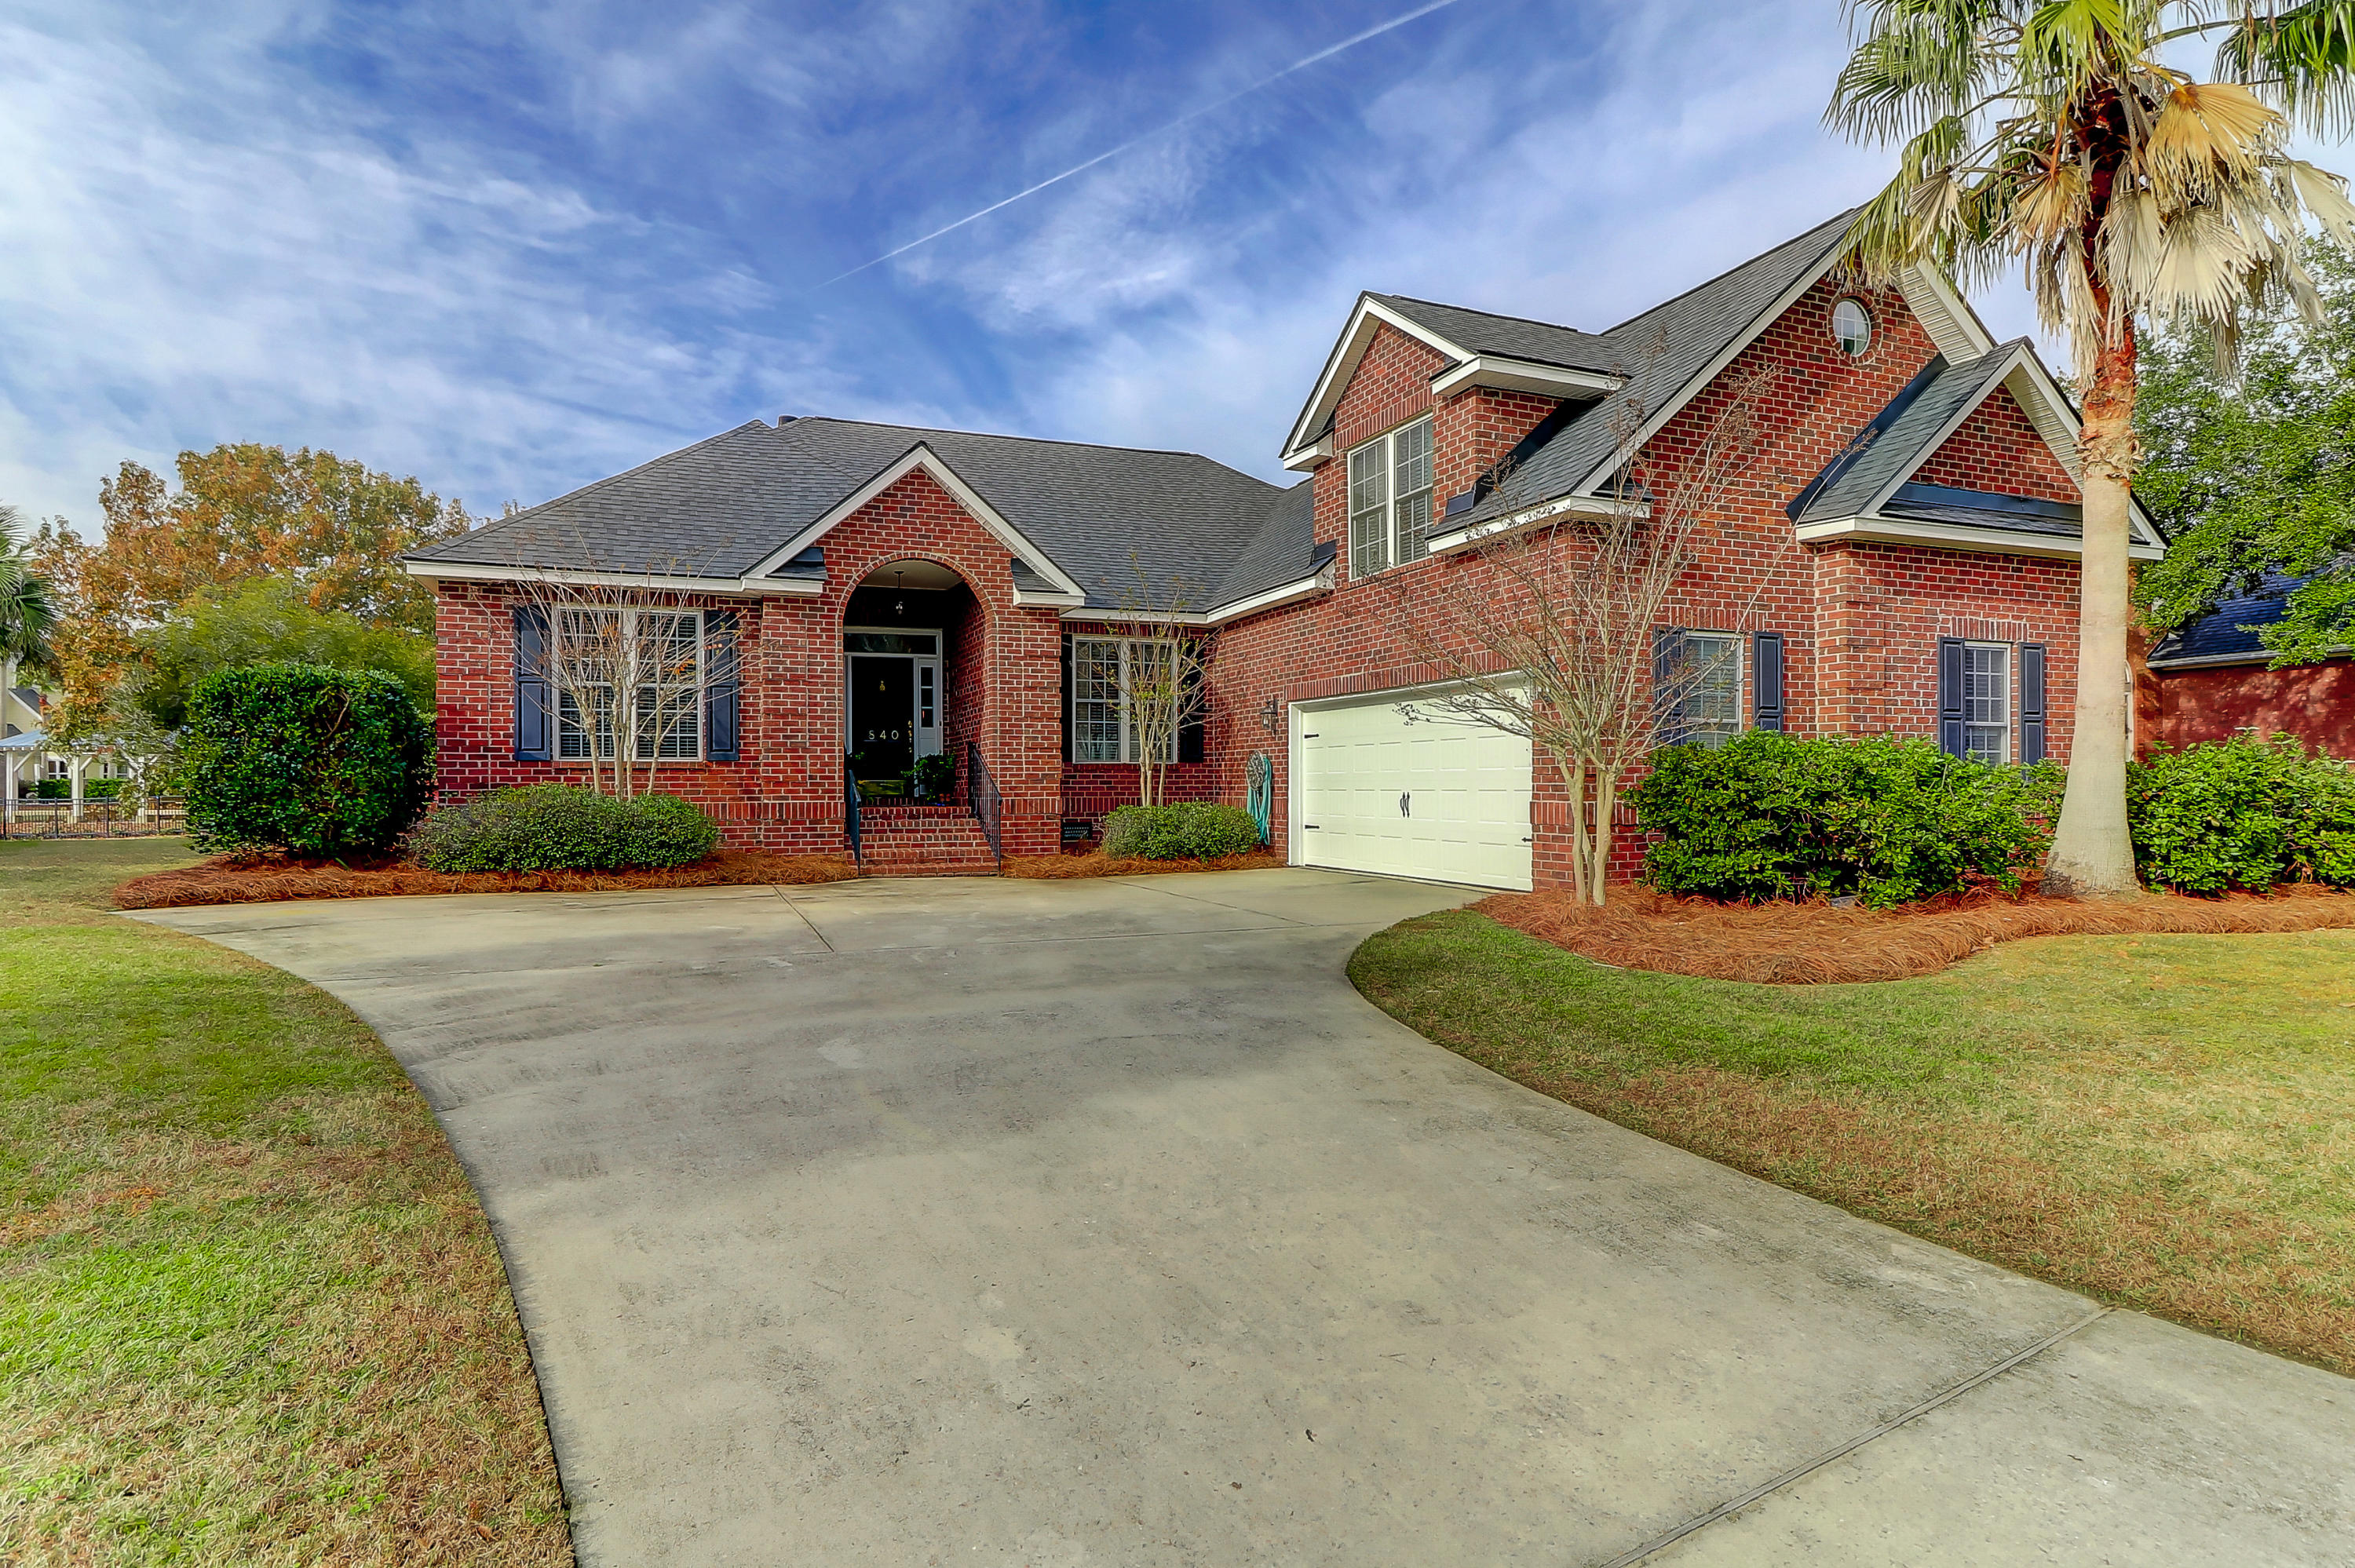 Belle Hall Homes For Sale - 840 High Battery, Mount Pleasant, SC - 17